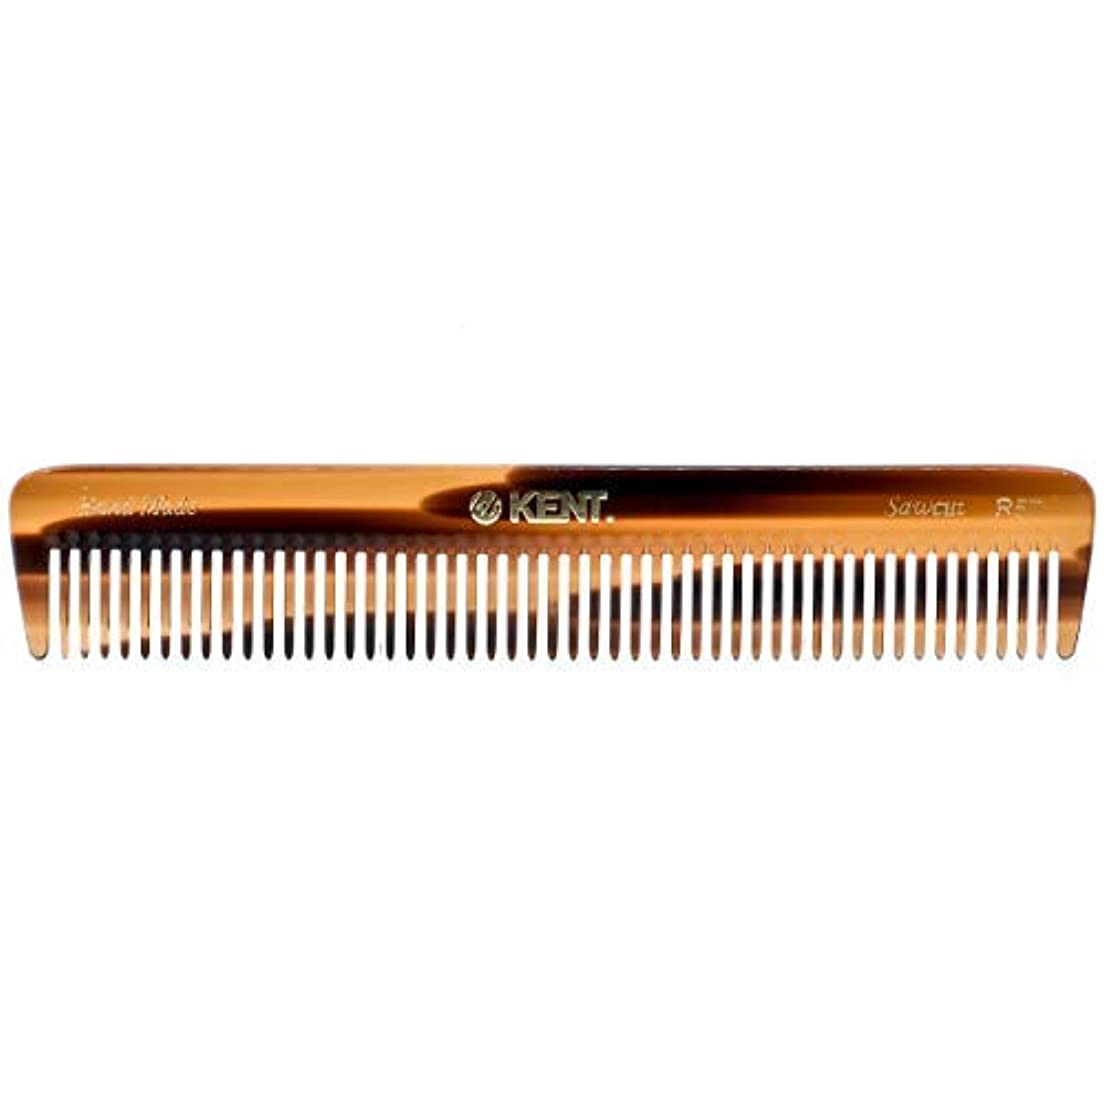 Kent The Hand Made Comb Coarse/Fine for Men 6.5 Inch, 1 Ounce [並行輸入品]